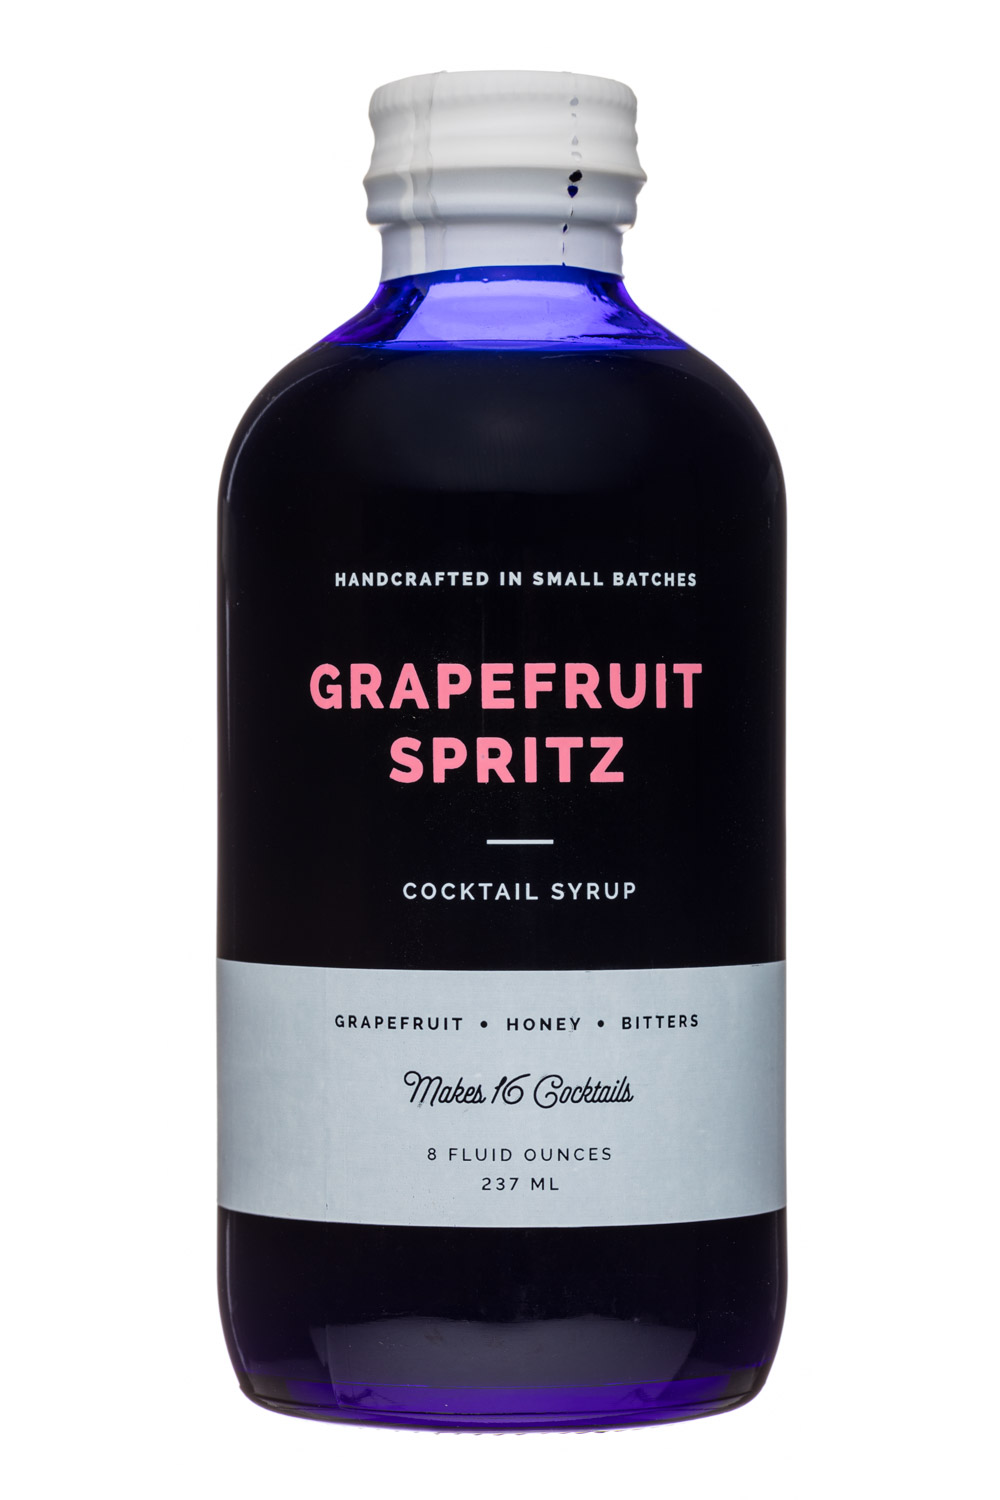 Grapefruit Spiritz